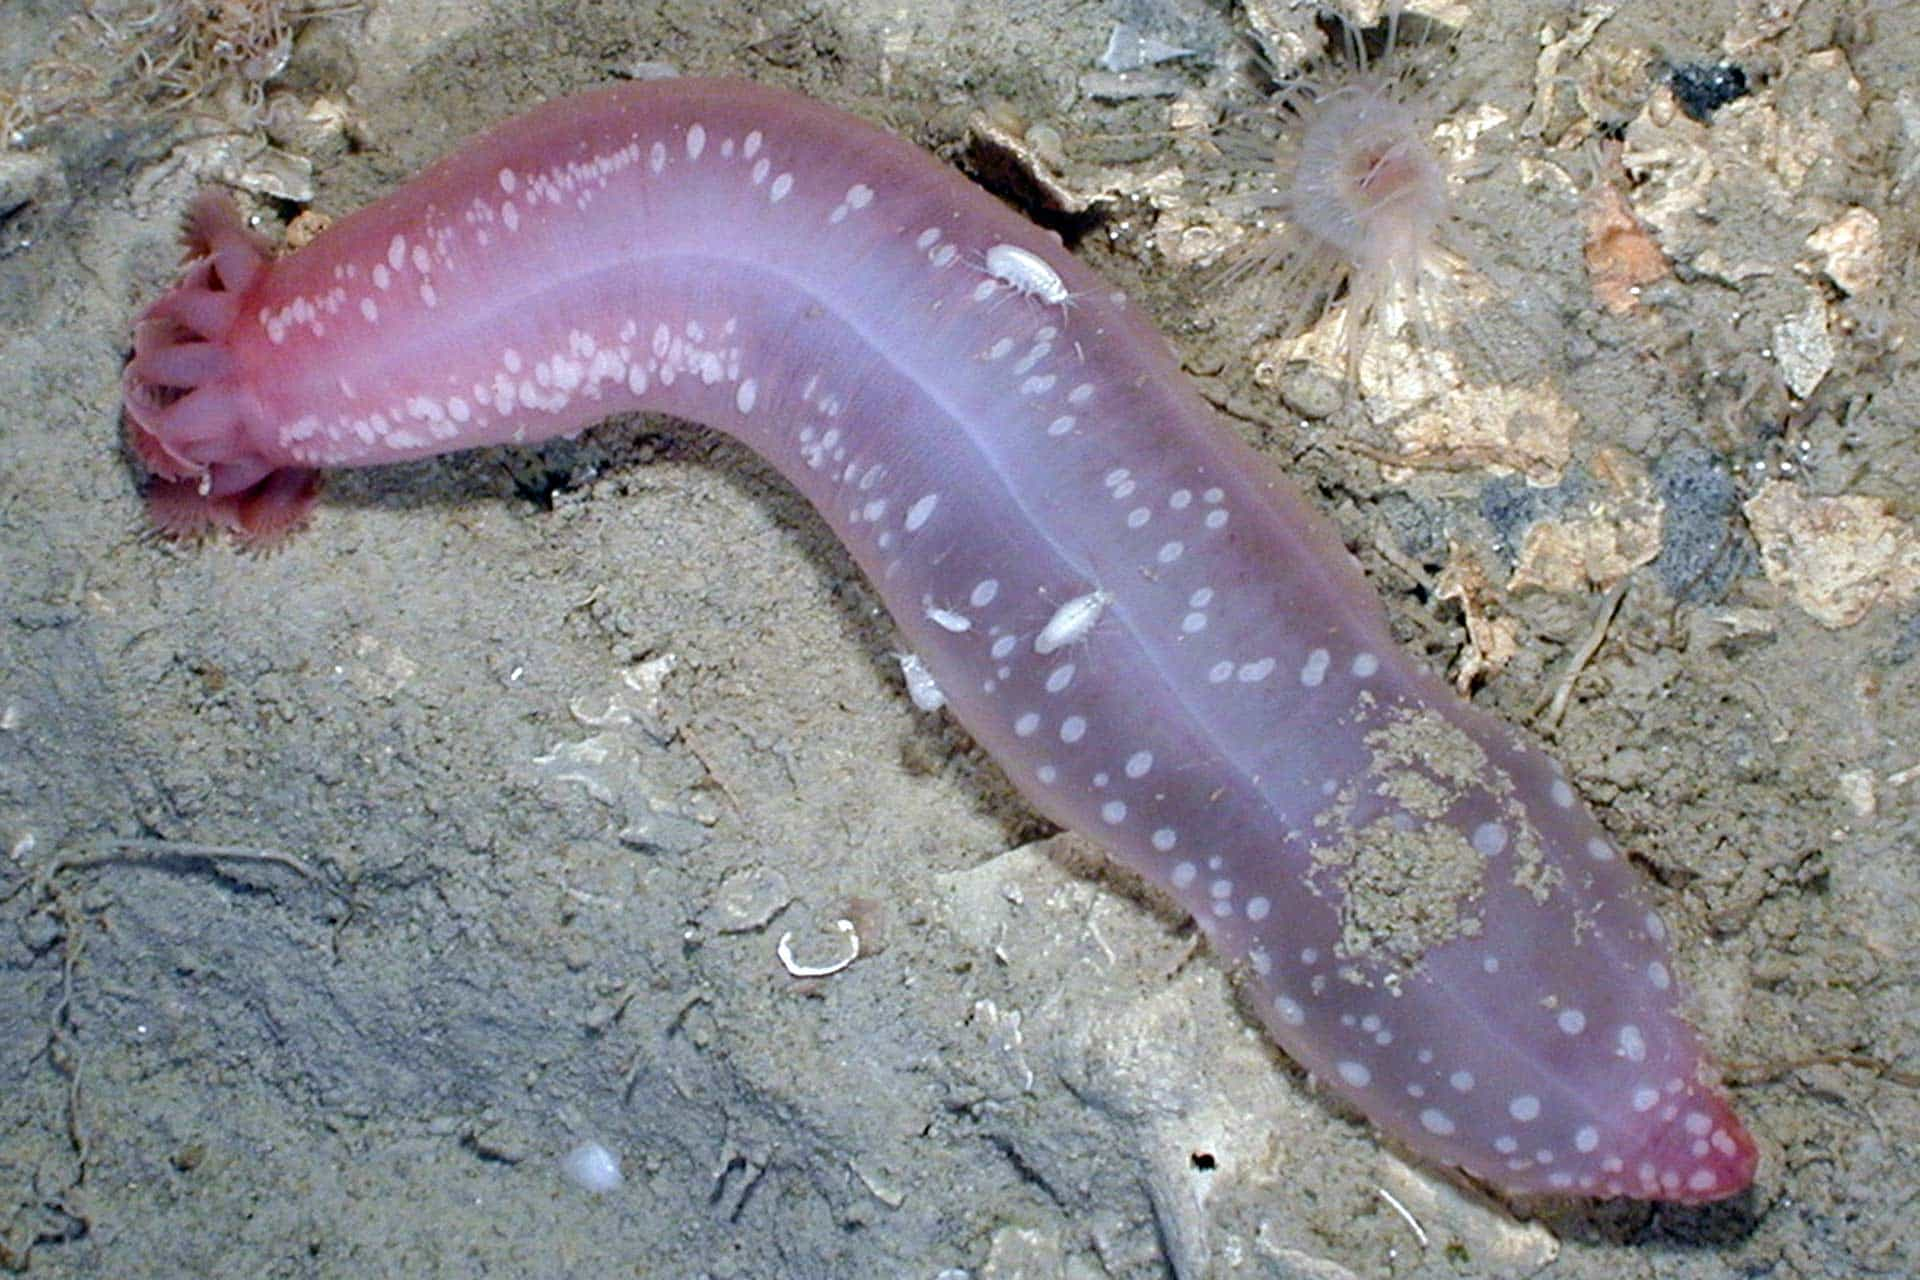 pink worm-like sea cucumber on sandy ocean floor